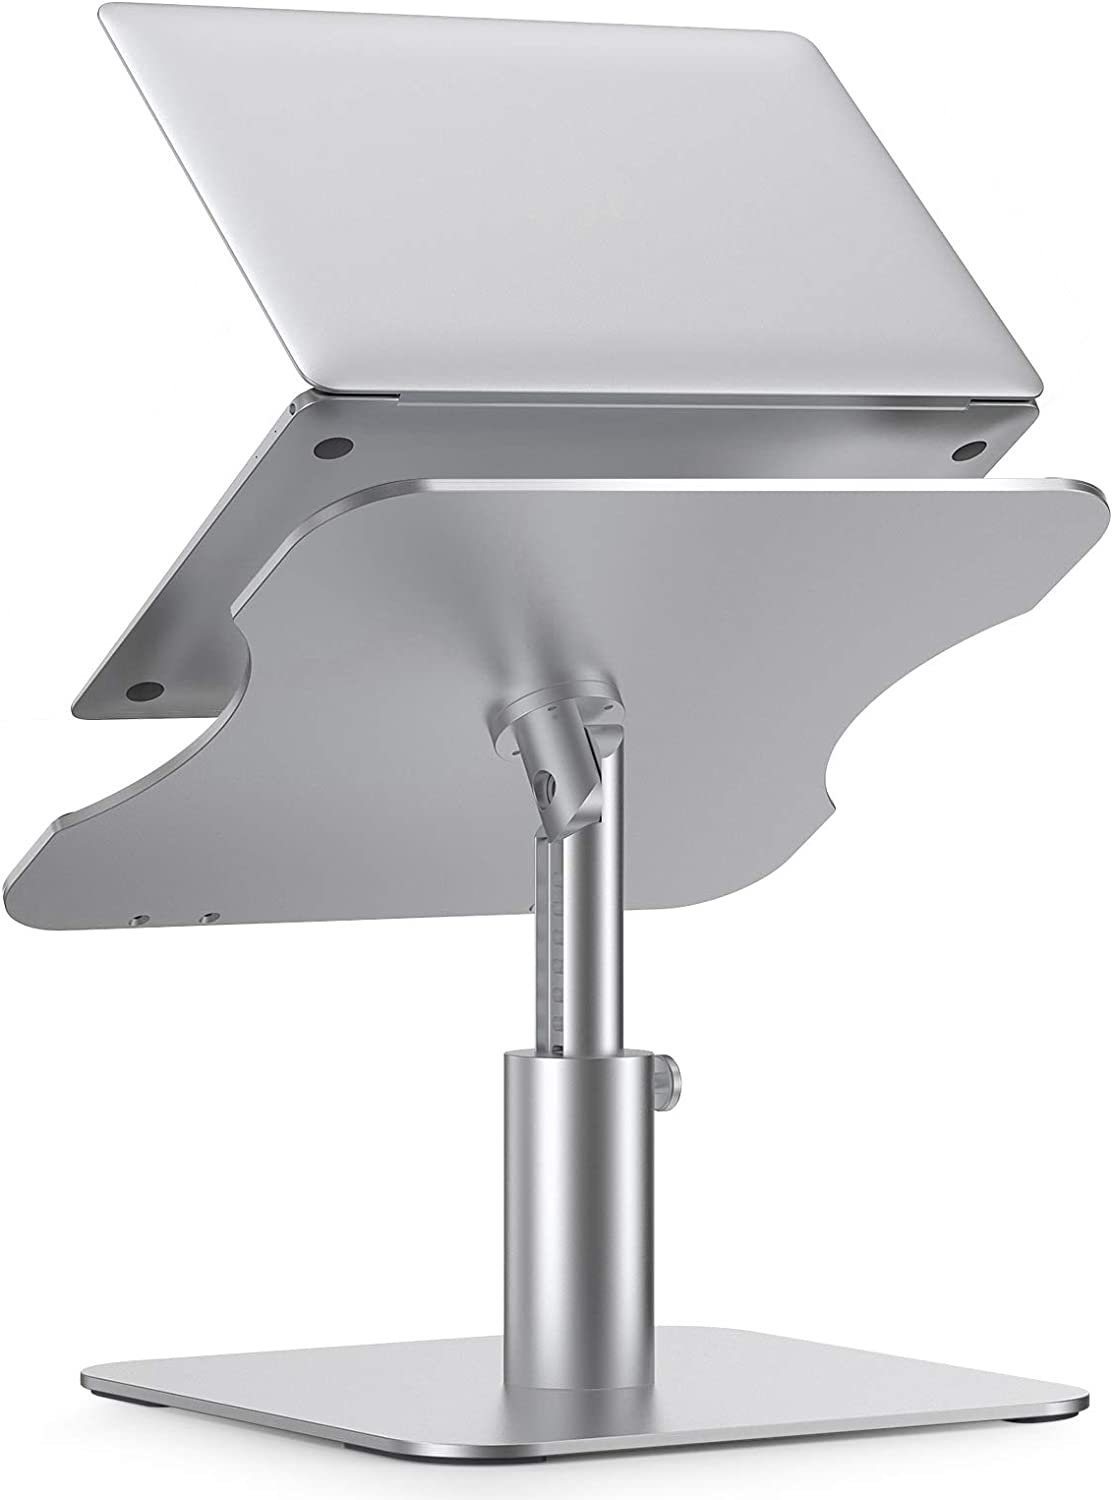 Adjustable Laptop Stand Holder for Desk Apple MacBook/Air/Pro/Dell/HP and Lenovo, Laptop Riser with 360°Rotation Multi-Angle Height Adjustable Computer Stand for More Notebooks 10-17